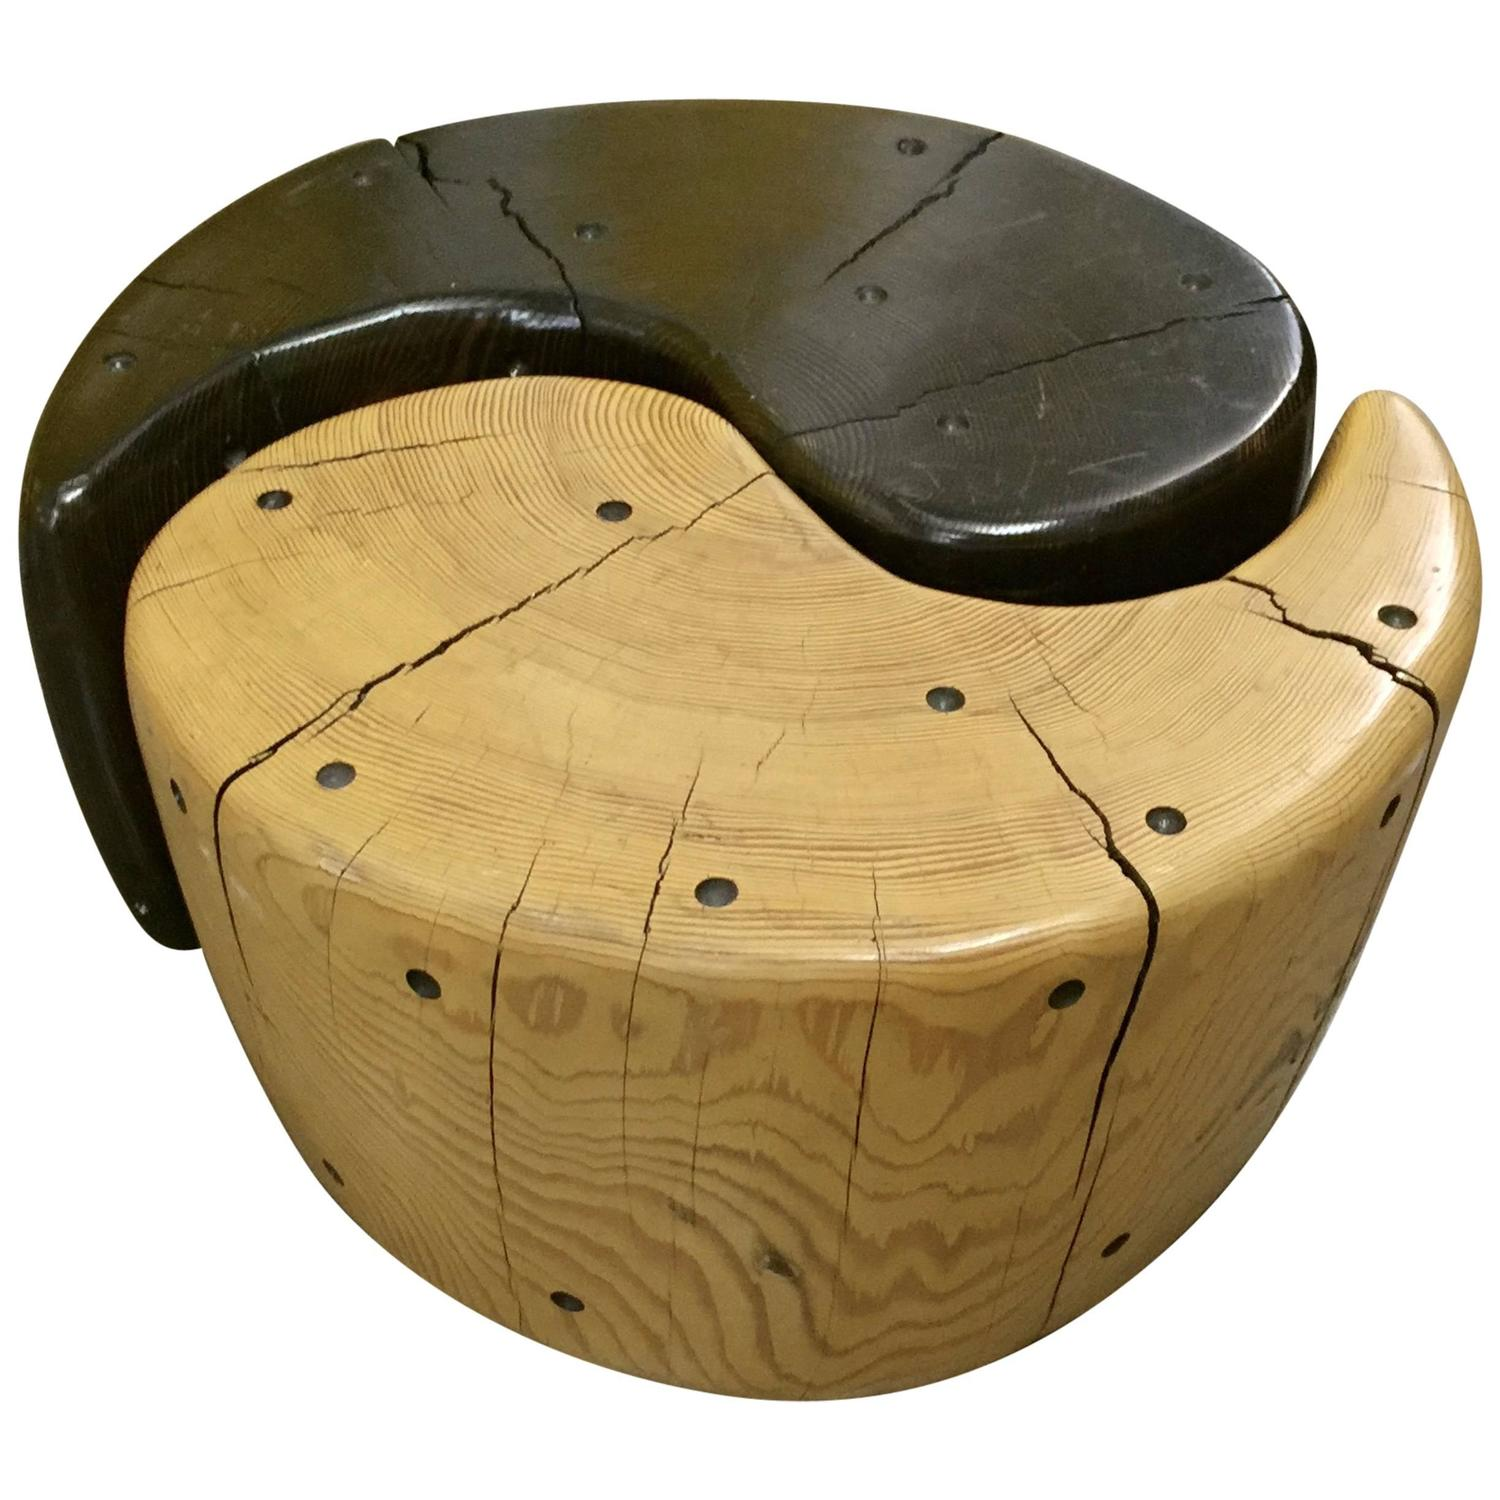 yin yang table by noted california artist daniel pollock for sale at